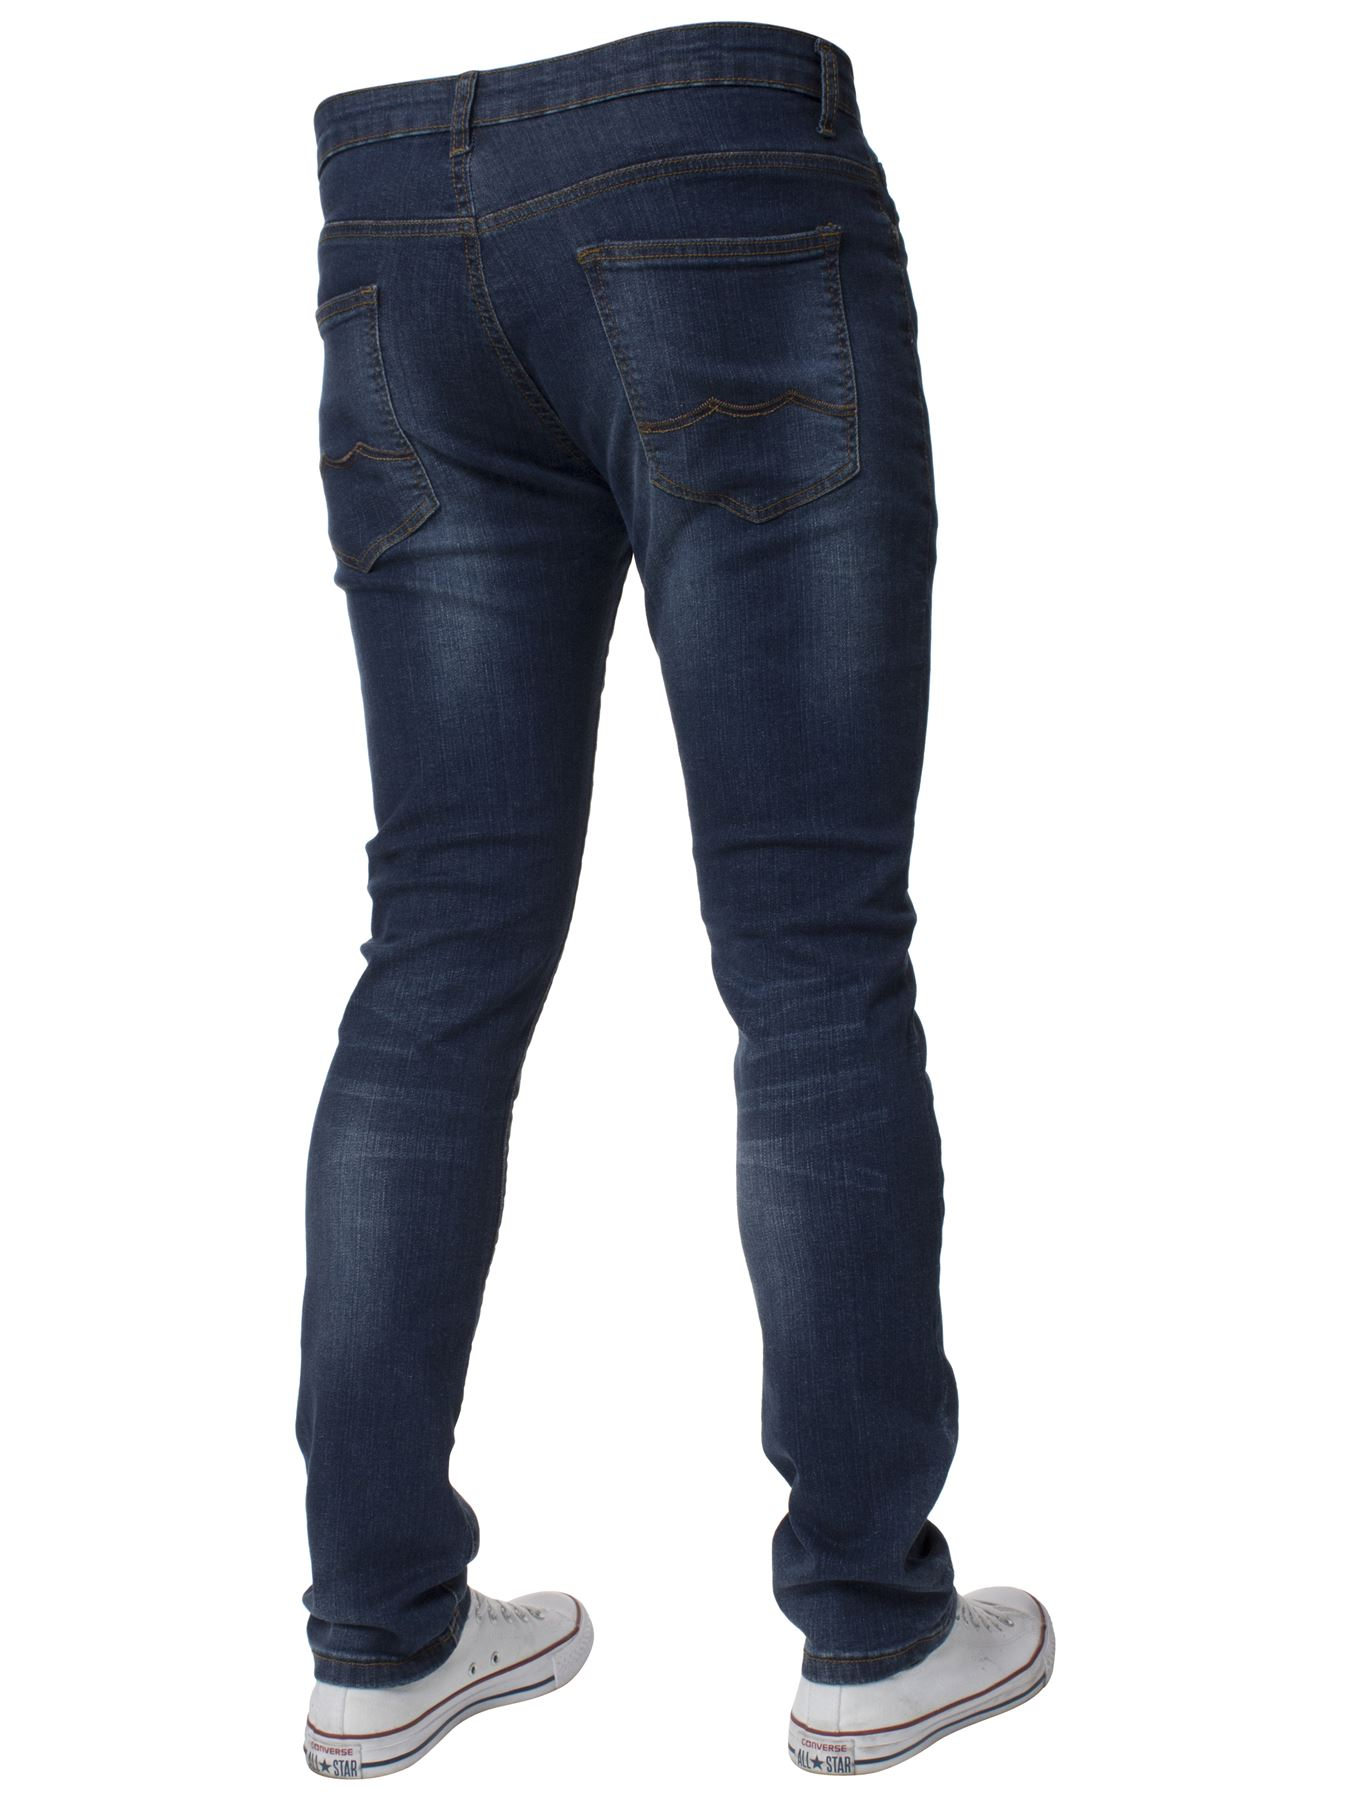 Kruze-Mens-Skinny-Stretch-Flex-Denim-Jeans-Slim-Fit-Trouser-Pants-Big-King-Sizes thumbnail 11